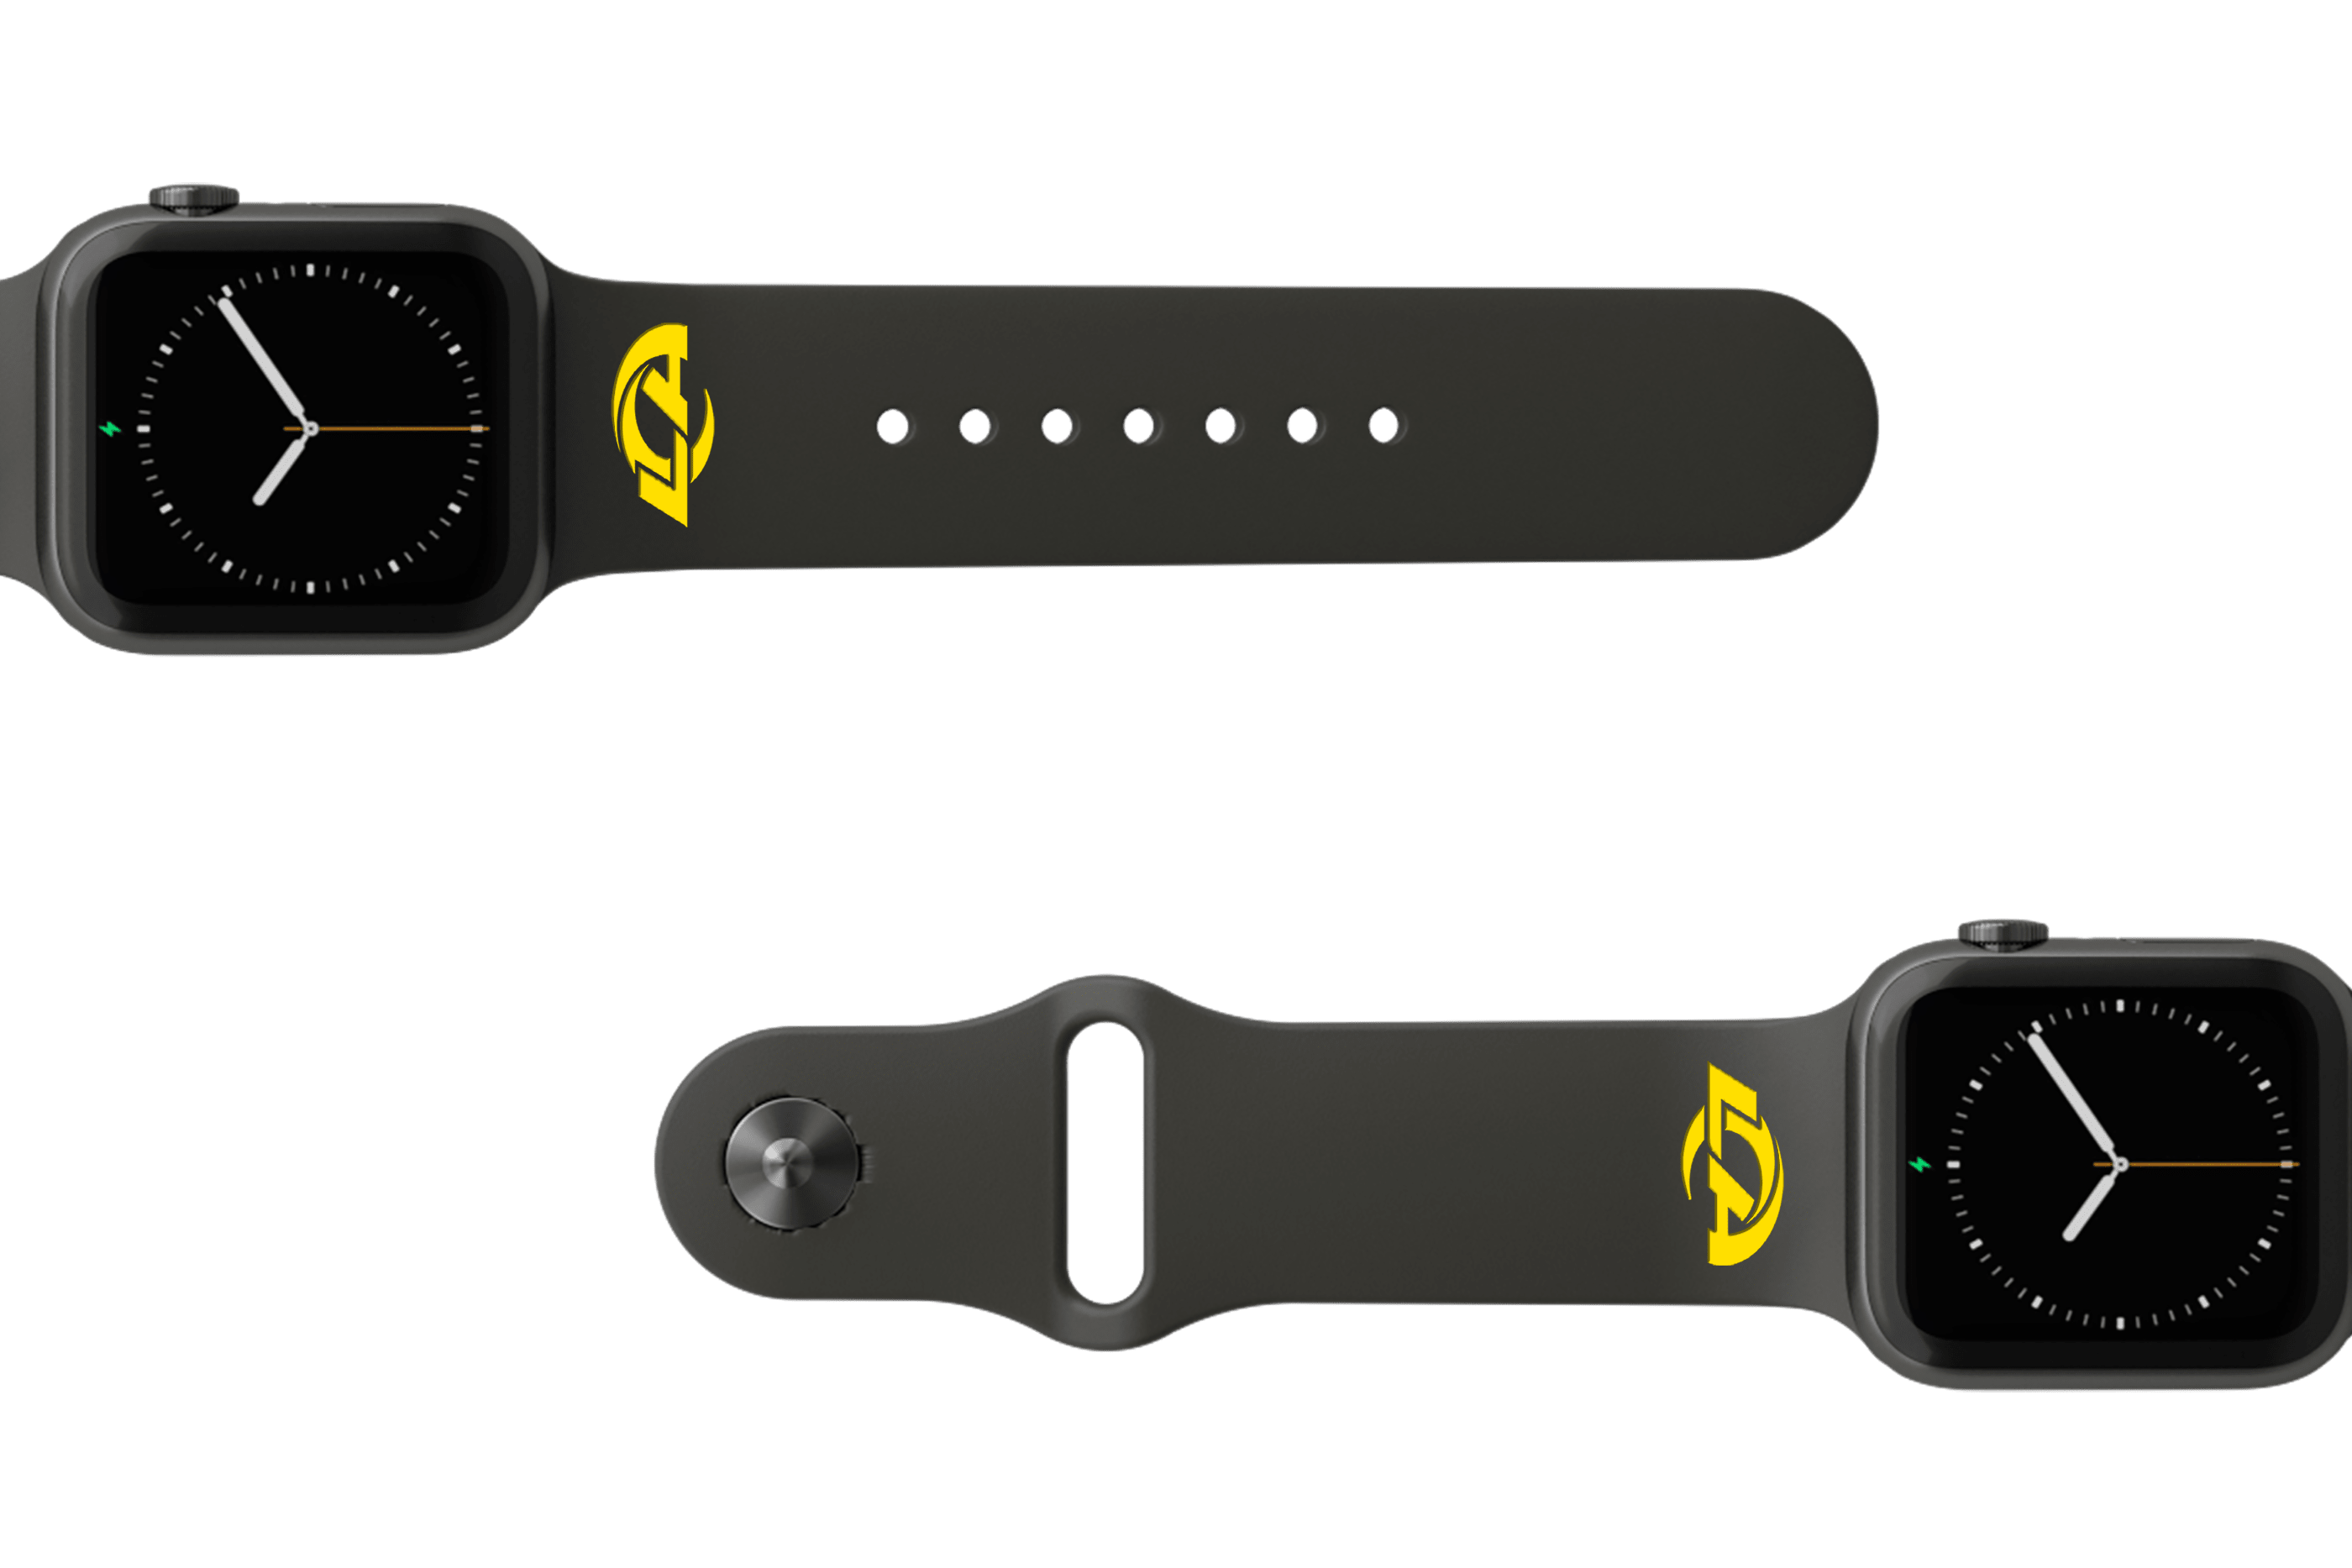 NFL Los Angeles Rams Black   apple watch band with gray hardware viewed from top down